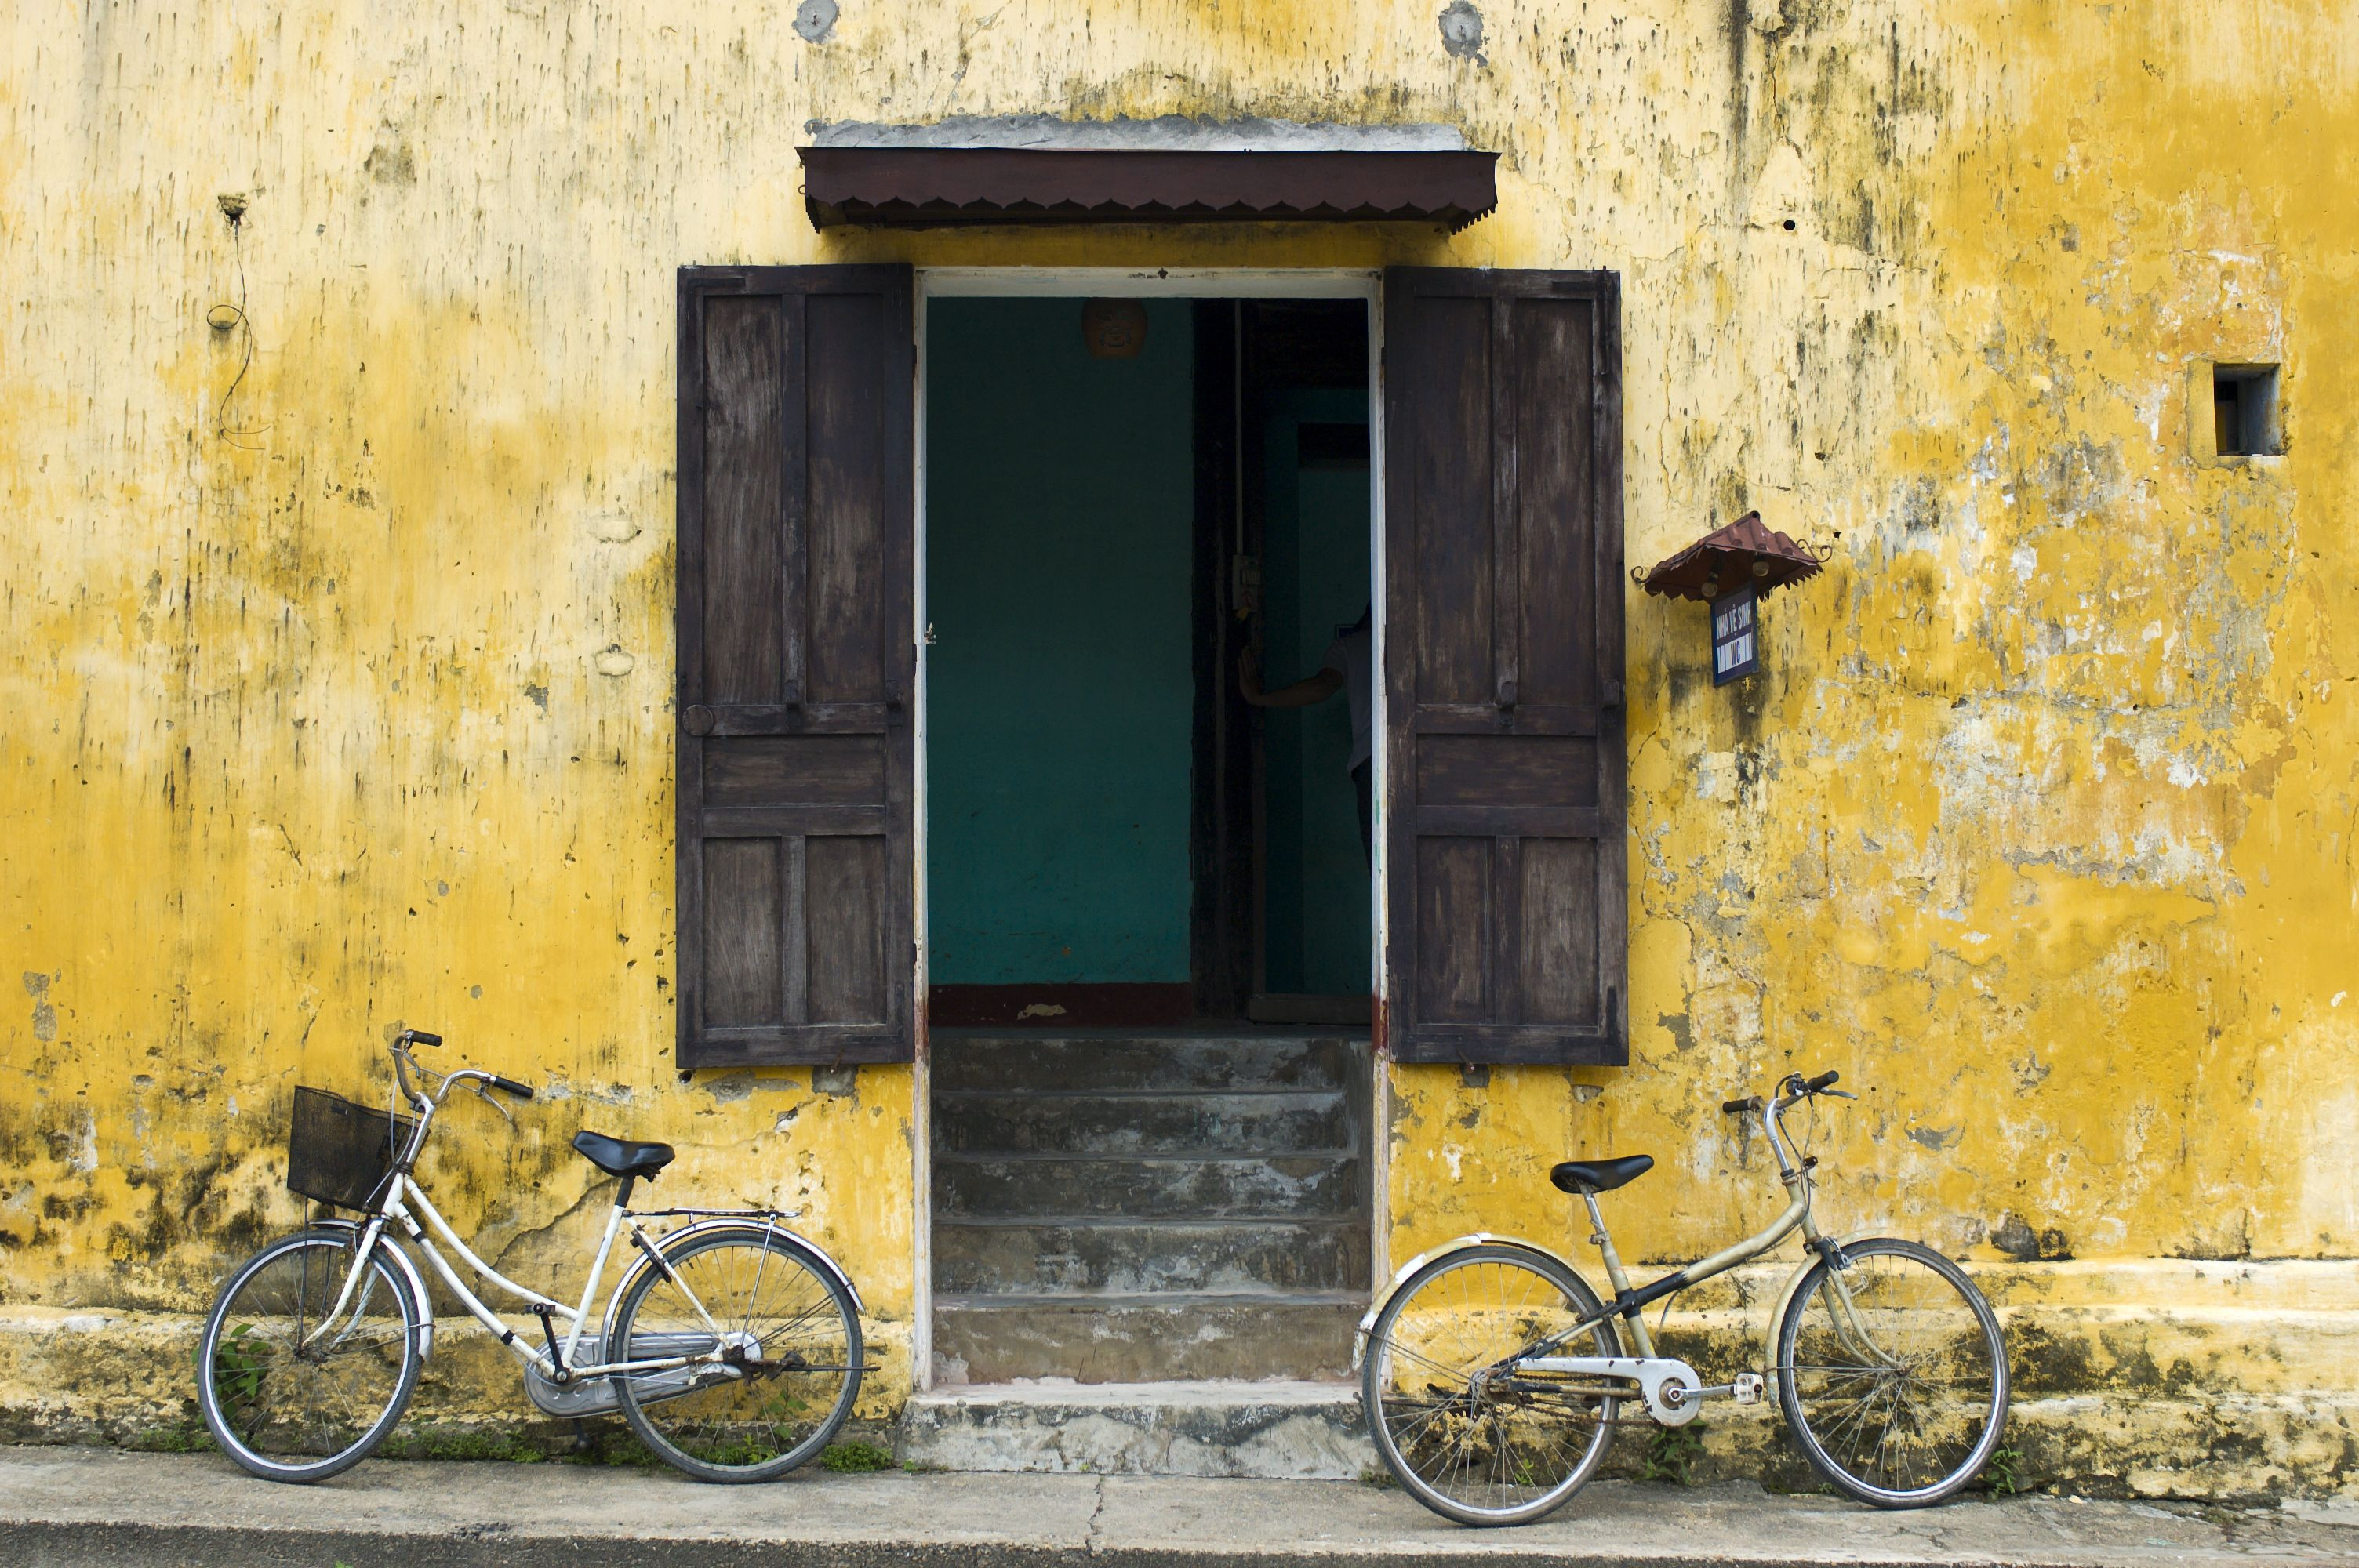 Bicycles parked outside a yellow building in Hoi An